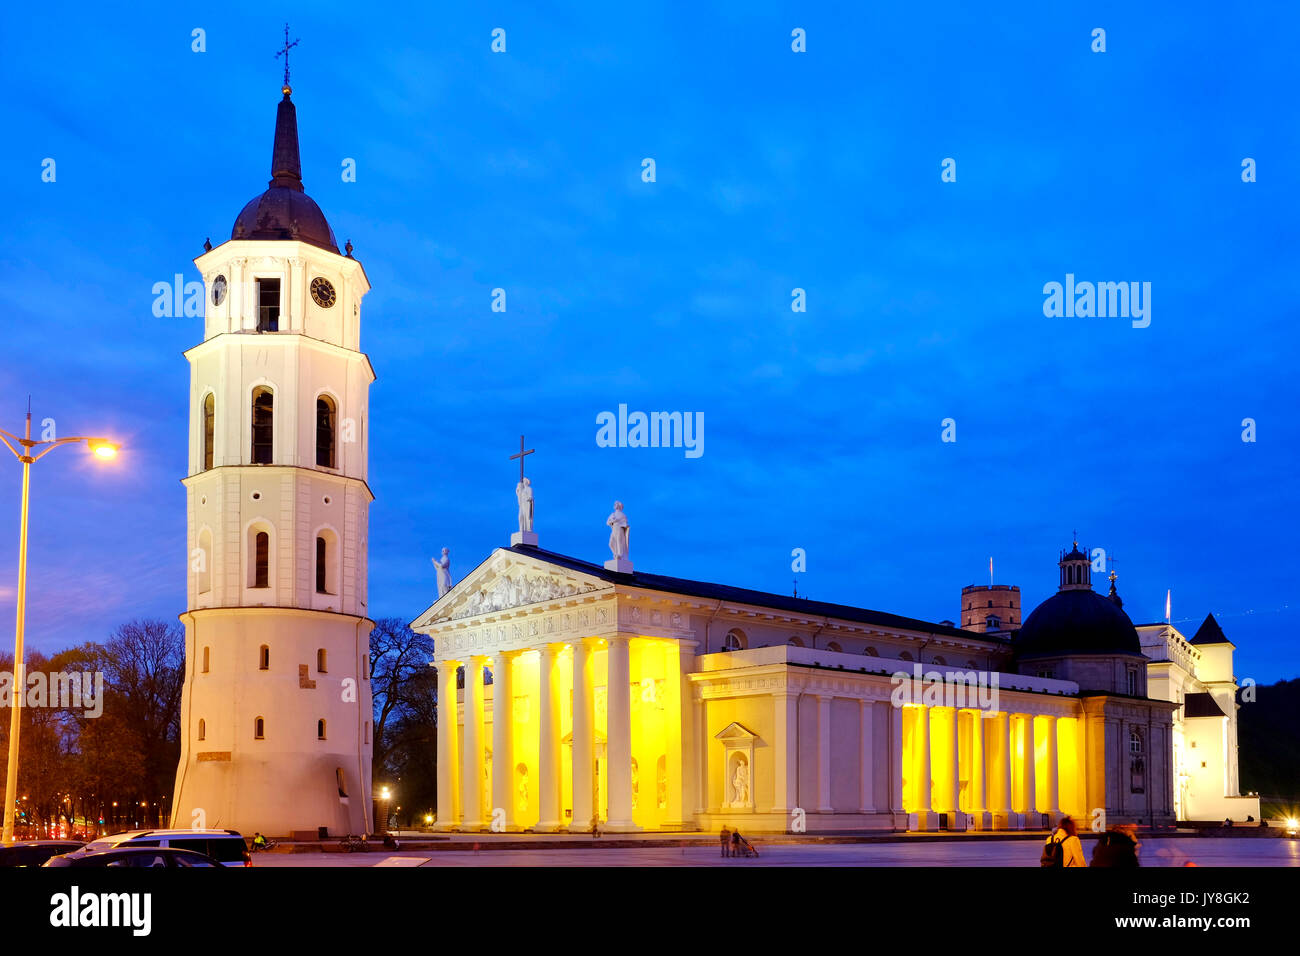 Cathedral Basilica of St Stanislaus and St Ladislaus, Vilnius, Lithuania - Stock Image